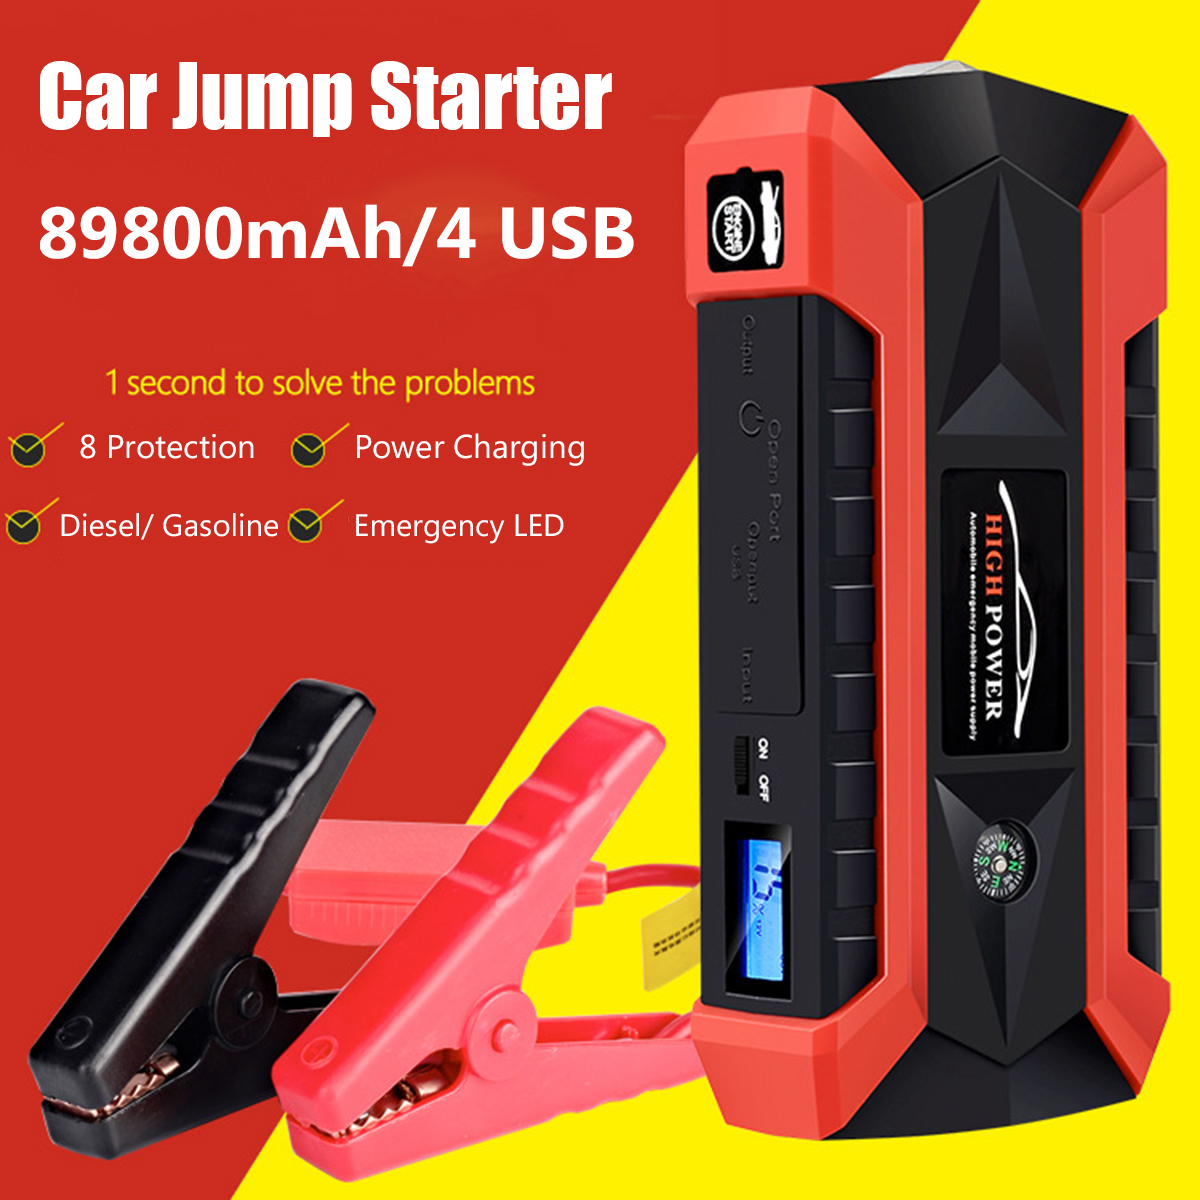 89800mAh 4USB 12V 600A LED Car Jump Starter Portable Emergency Charger Battery Power Bank Car Booster Starting Device Waterproof image